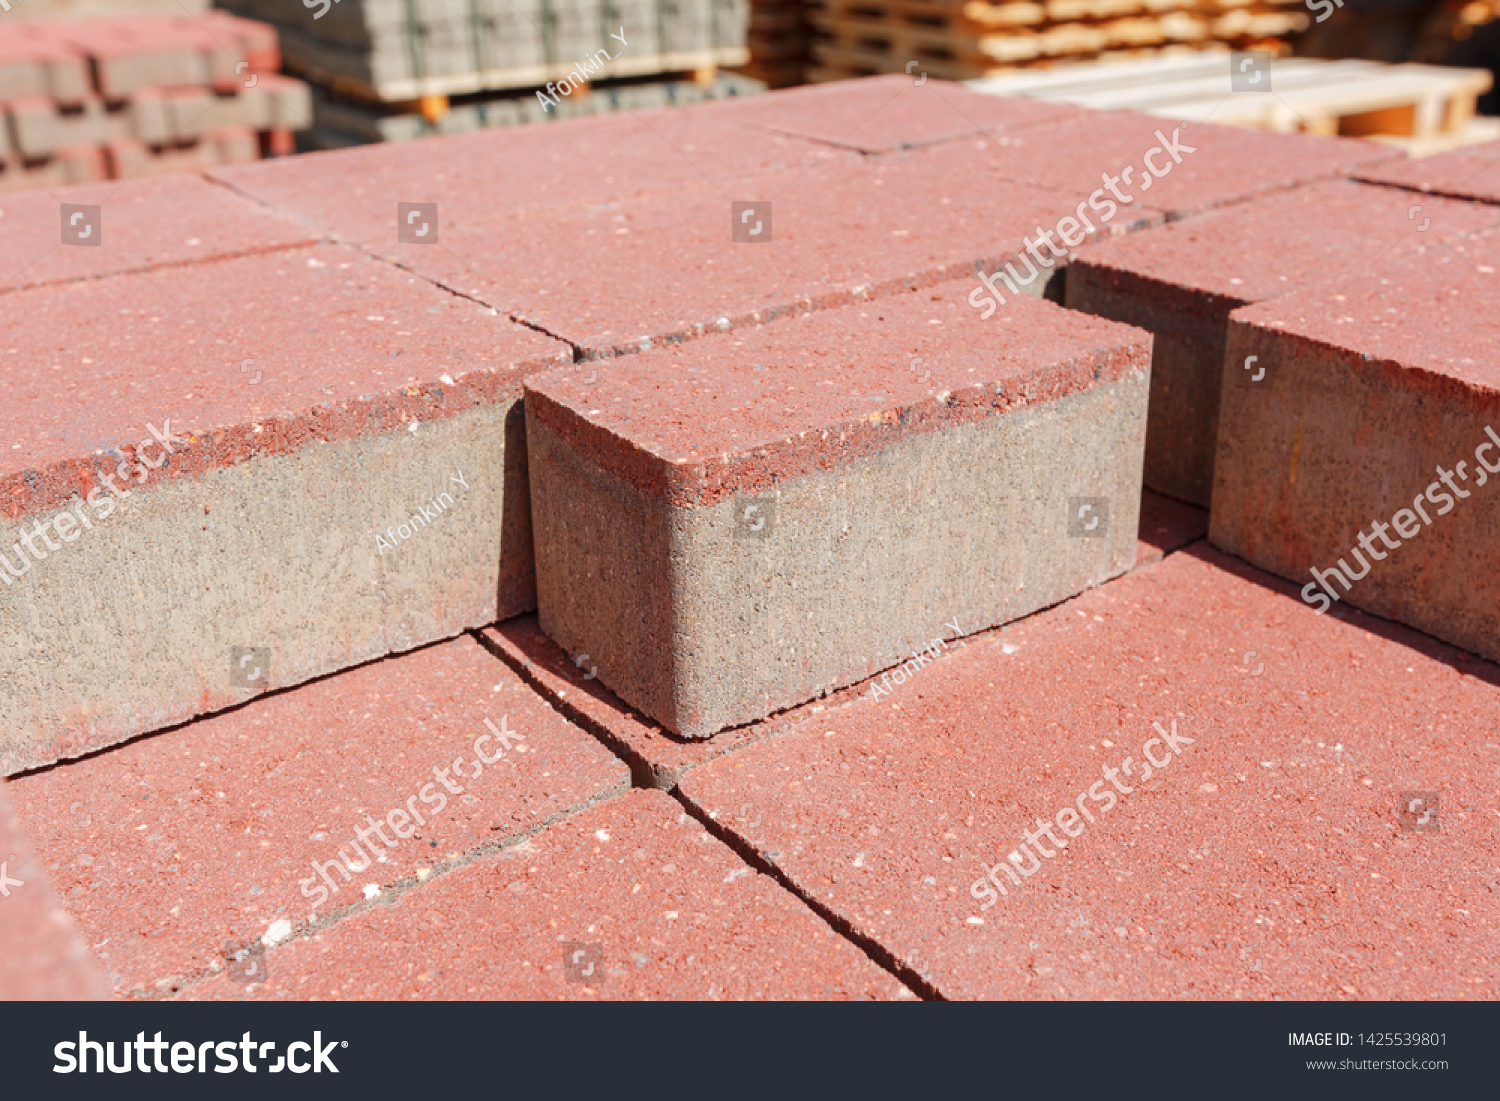 Hardware store, building materials. Construction, materials. #1425539801